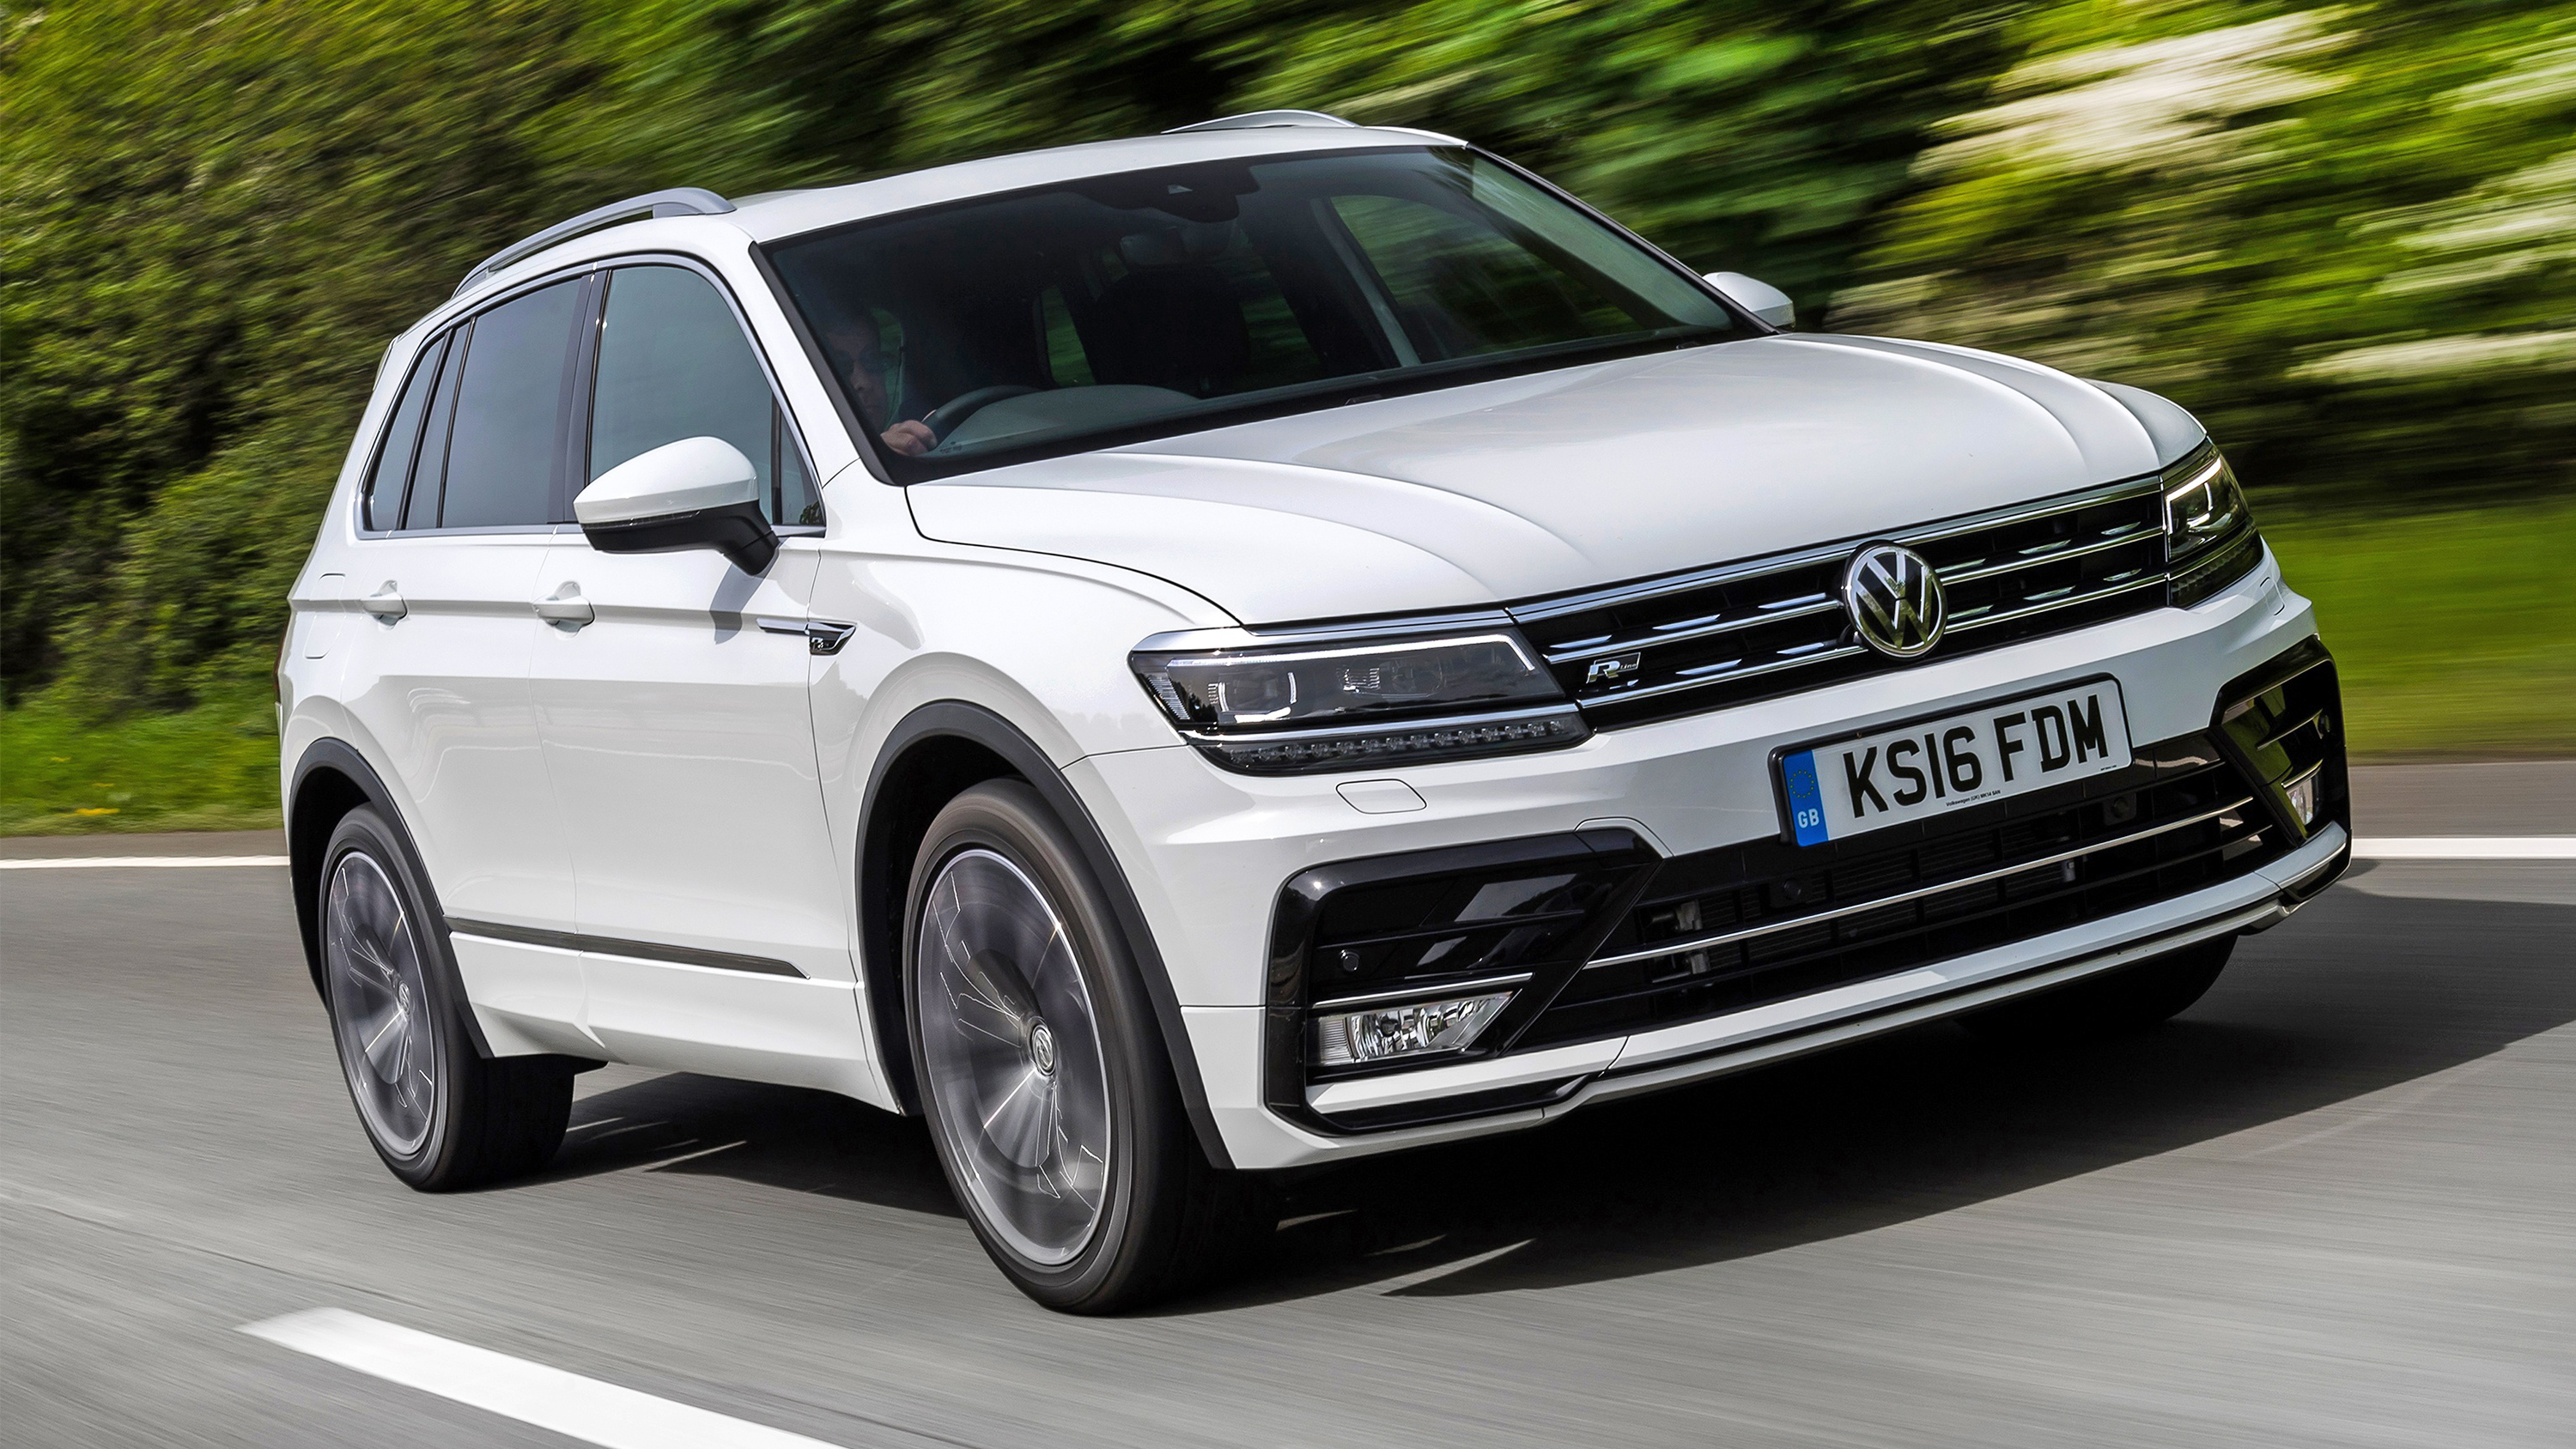 2018 Volkswagen Tiguan Review | Top Gear